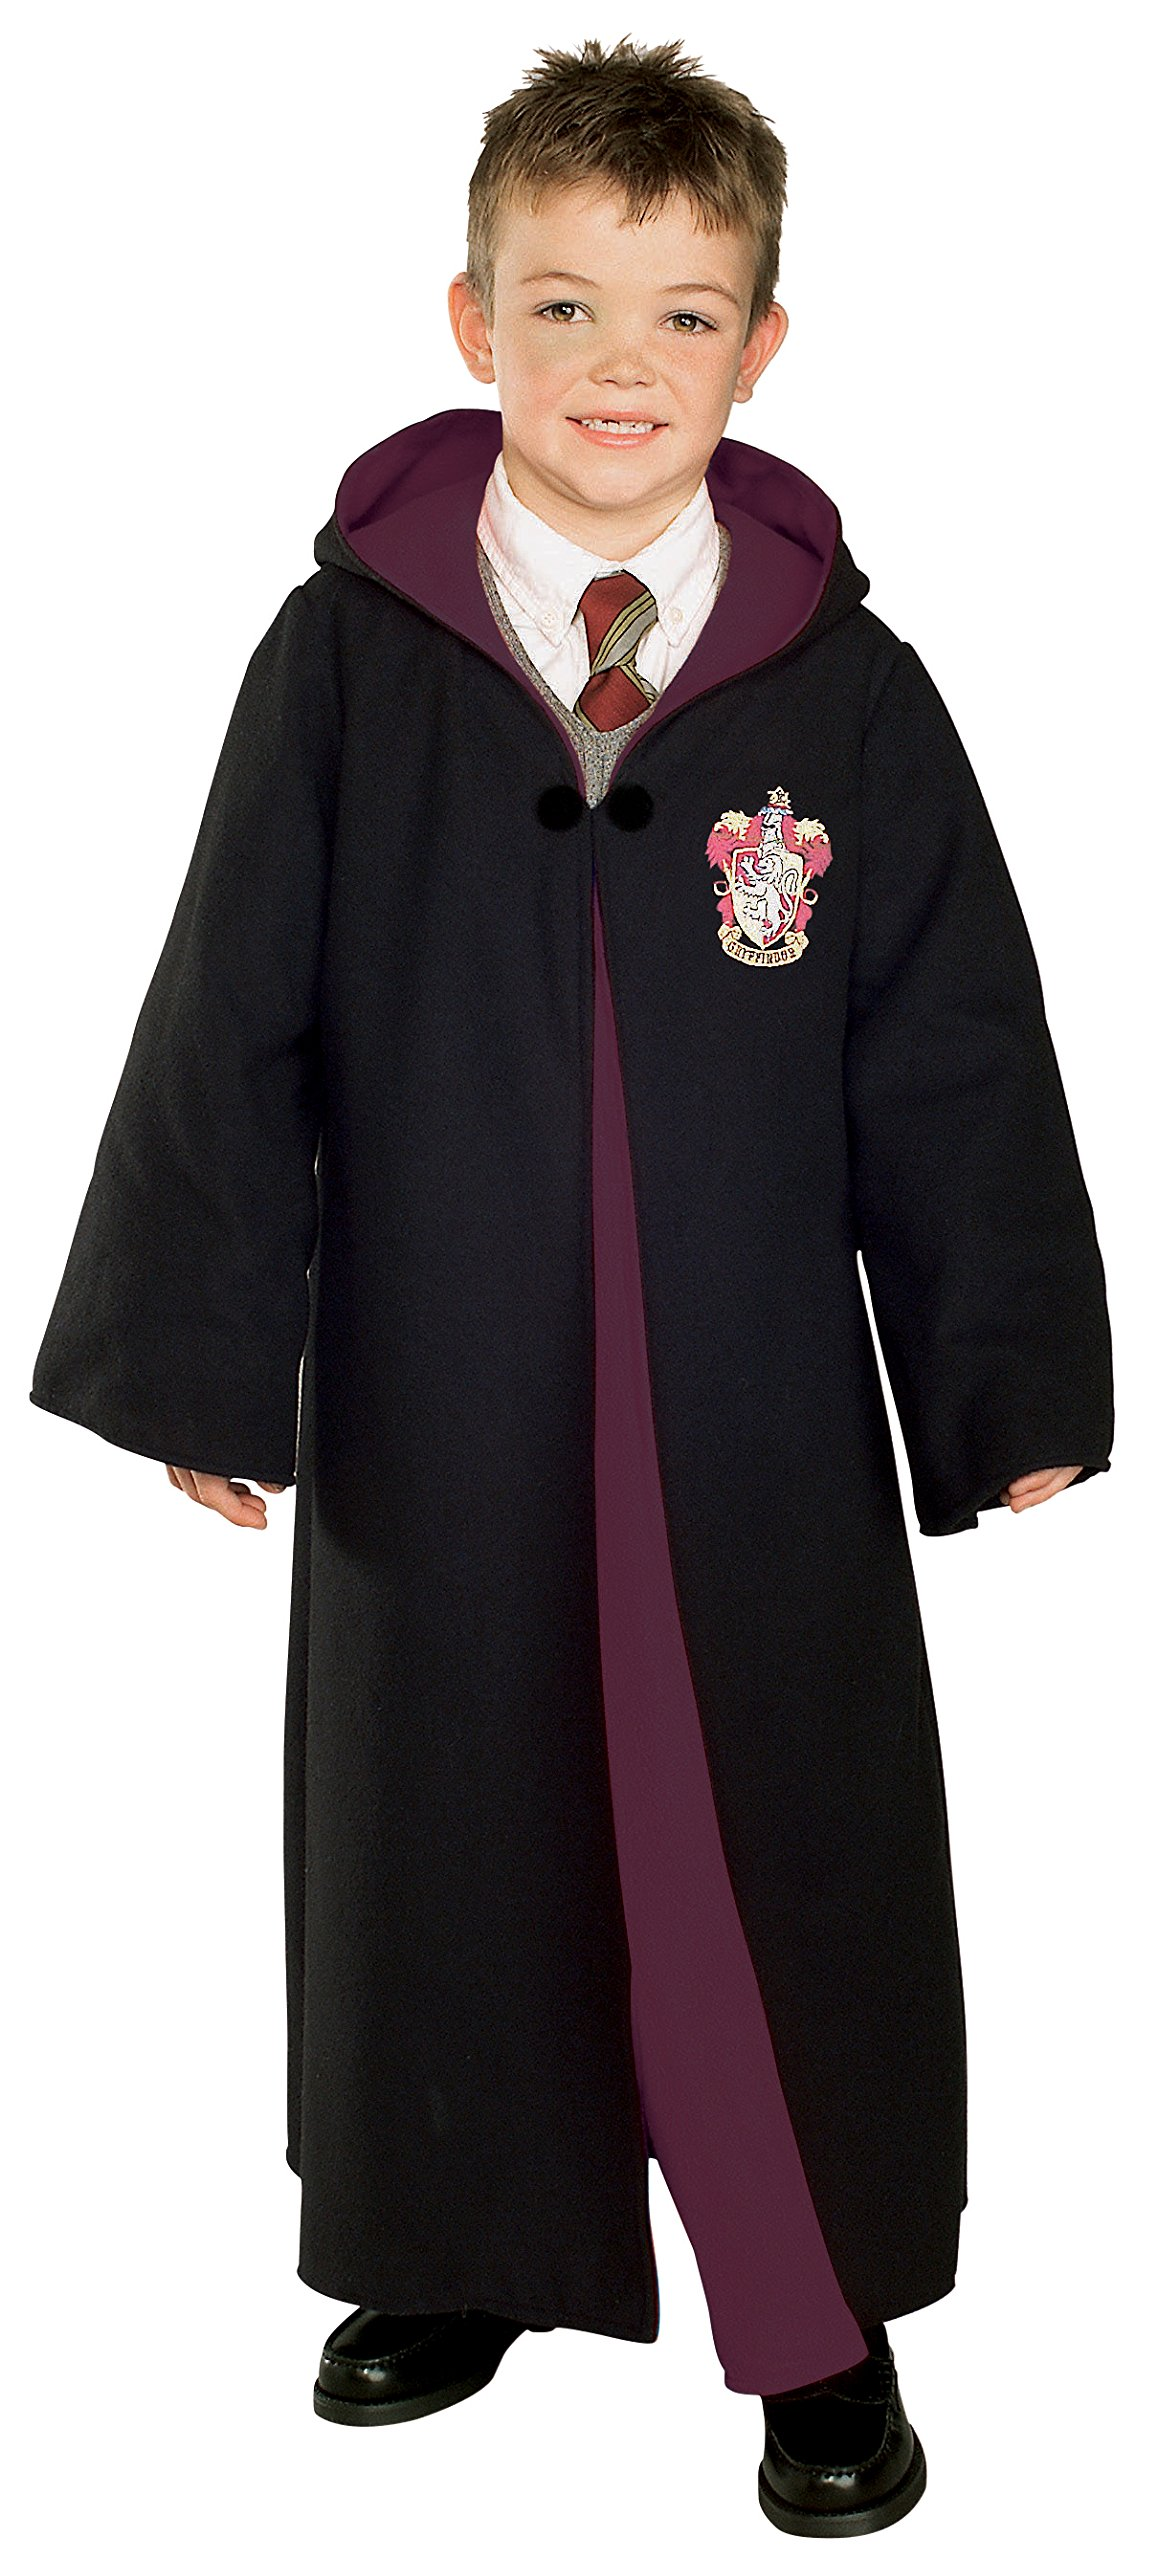 Rubie's Deluxe Harry Potter Child's Hermione Granger Costume Robe With Gryffindor Emblem, Small